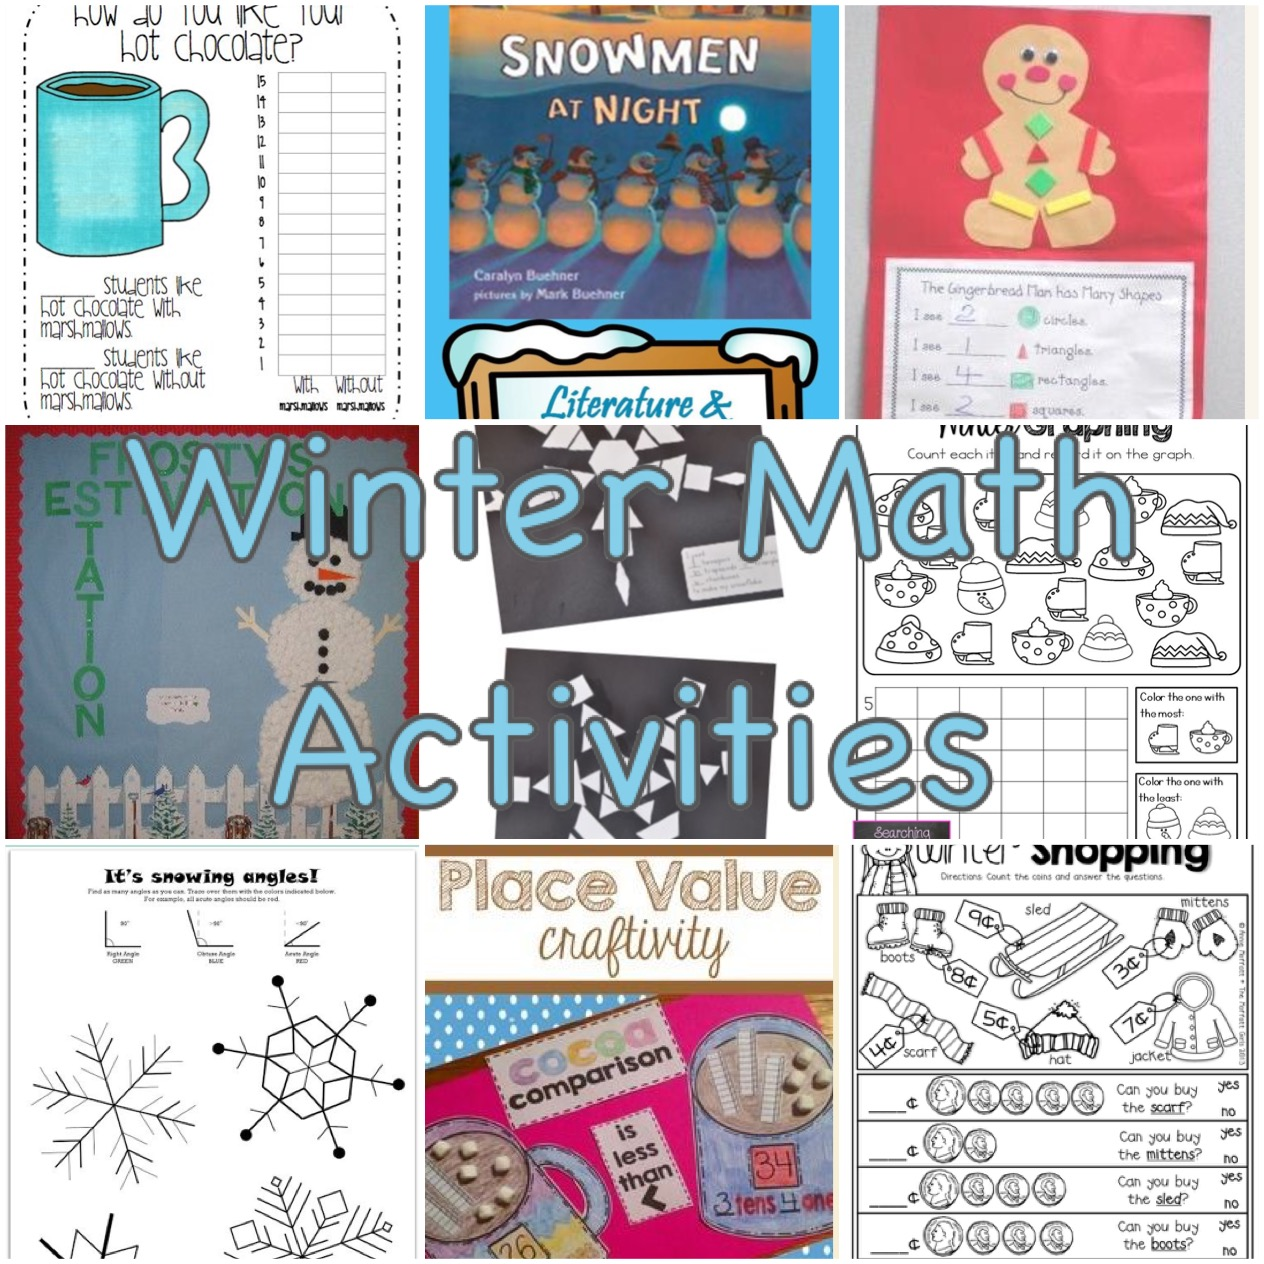 A great list of winter math activities you must try. Let's incorporate the winter spirit as much as we can to enrich our classrooms and homes.